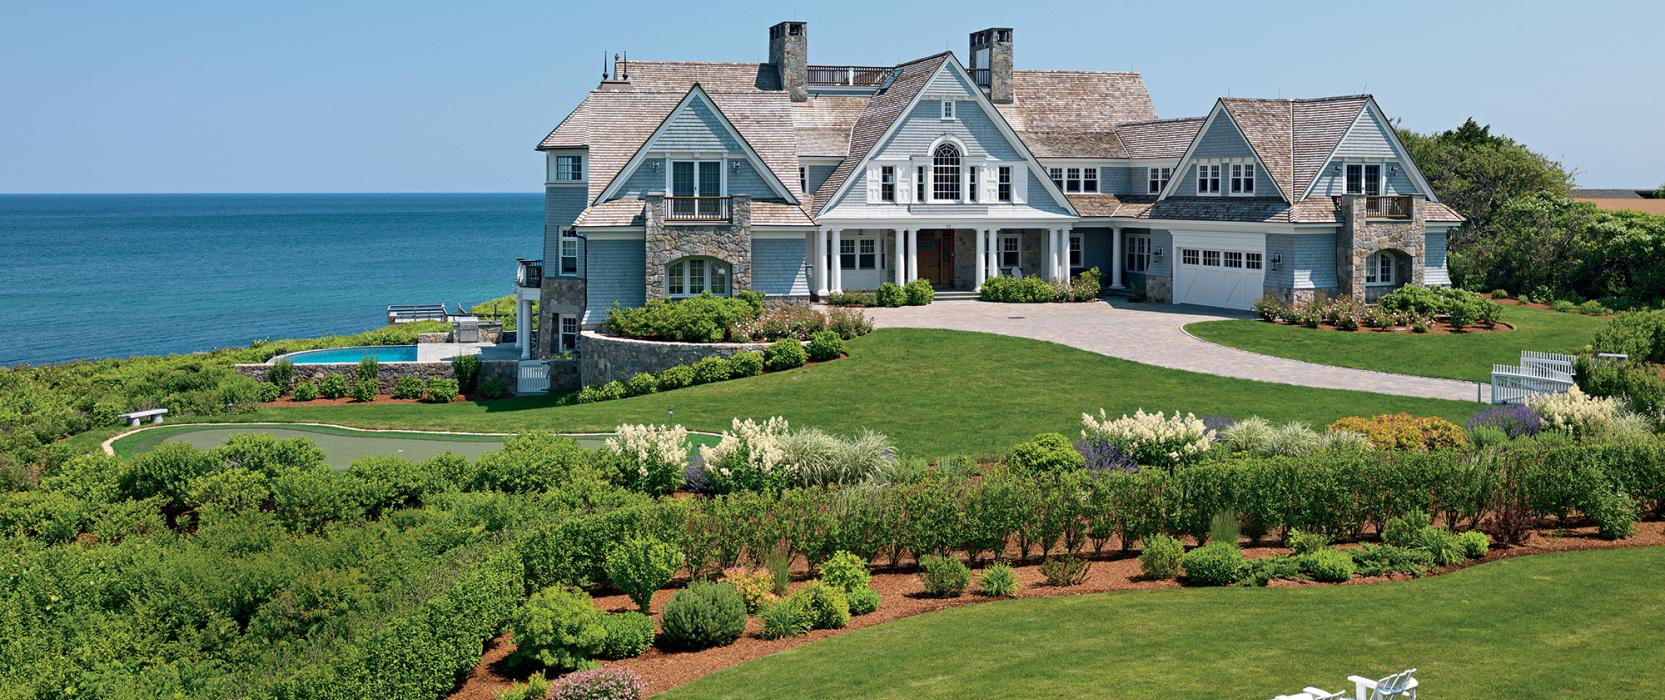 unbelievable homes in Cape Cod